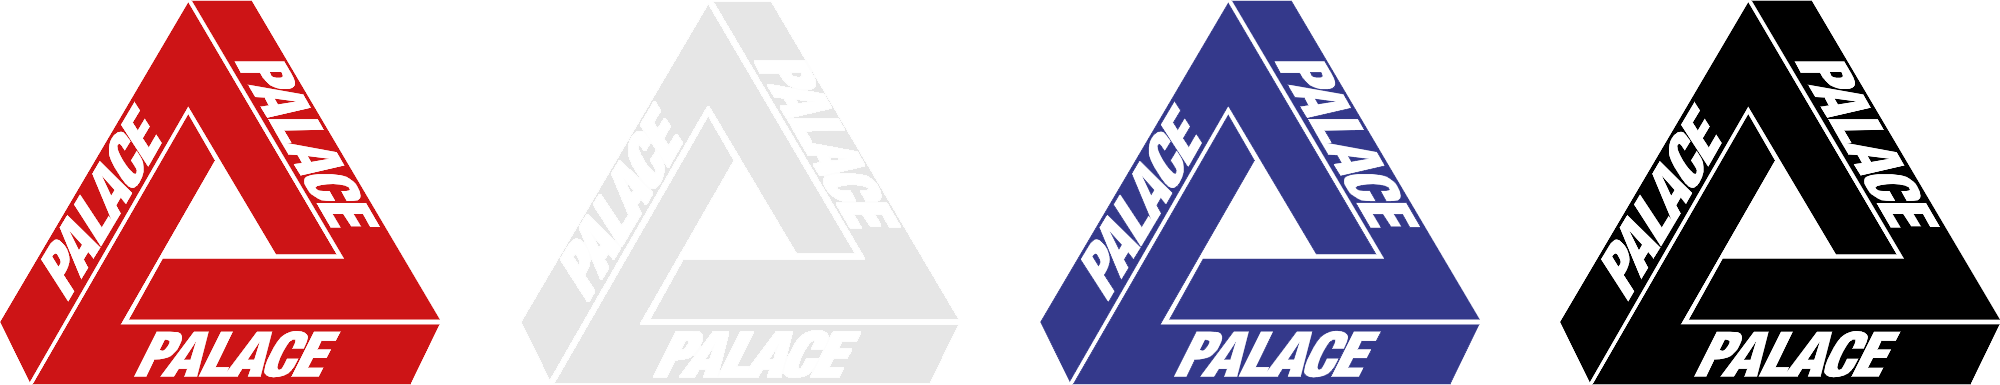 palace-skateboards-new-deck-drops-thedrop-logo.png